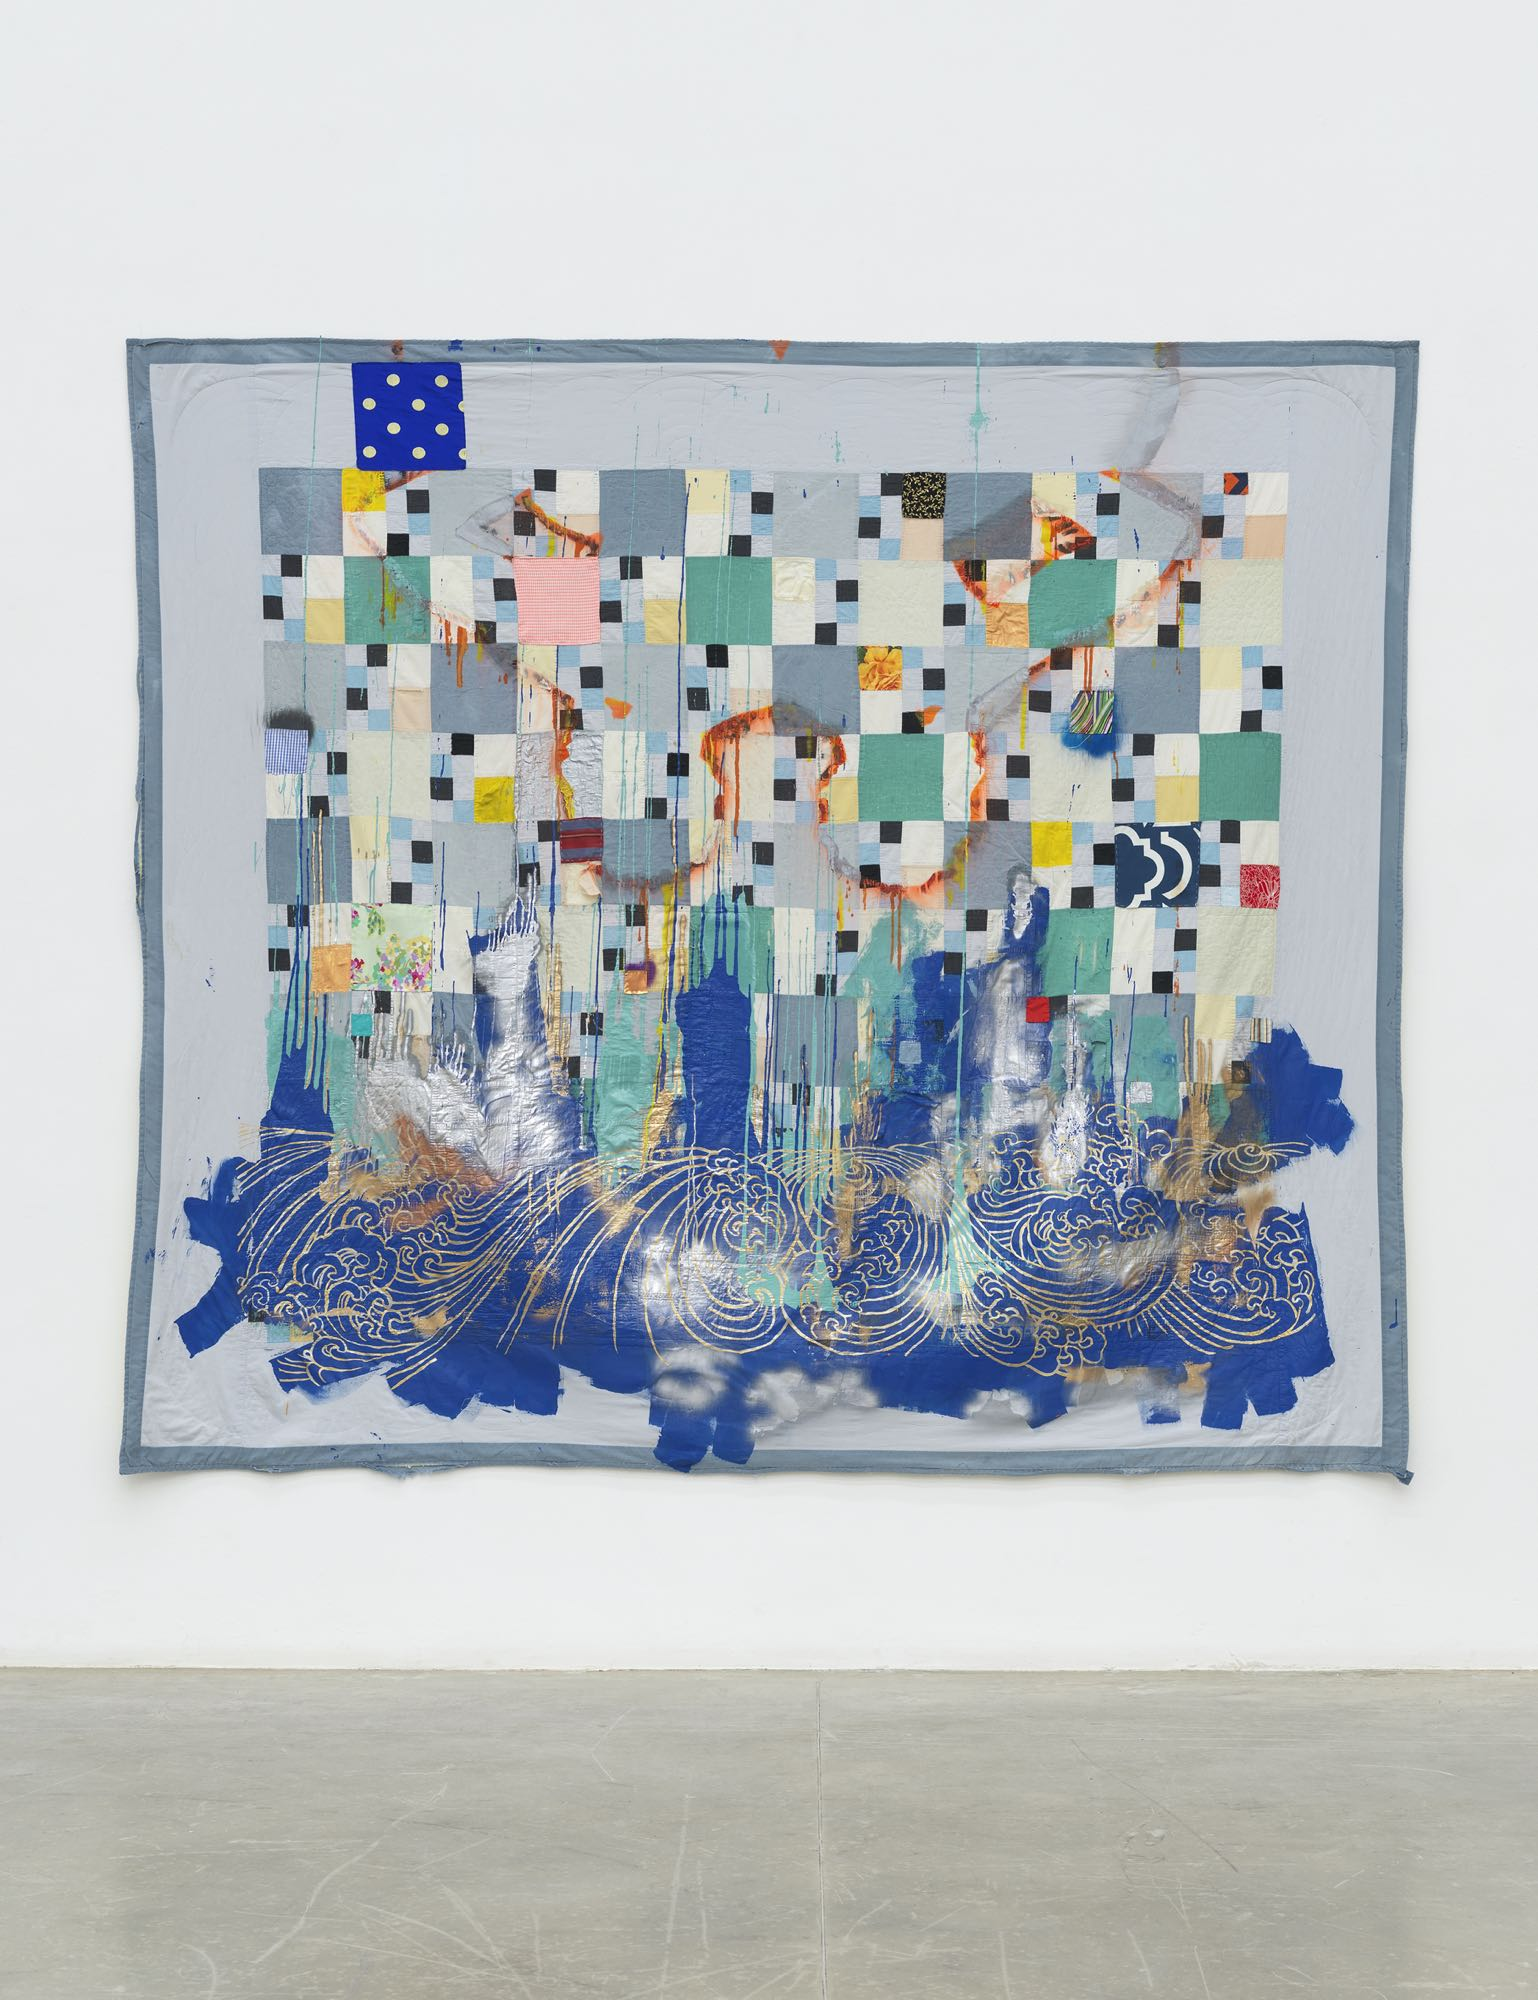 quilt by sanford biggers in gallery space, with square shapes in a pattern, and blue wave on the bottom